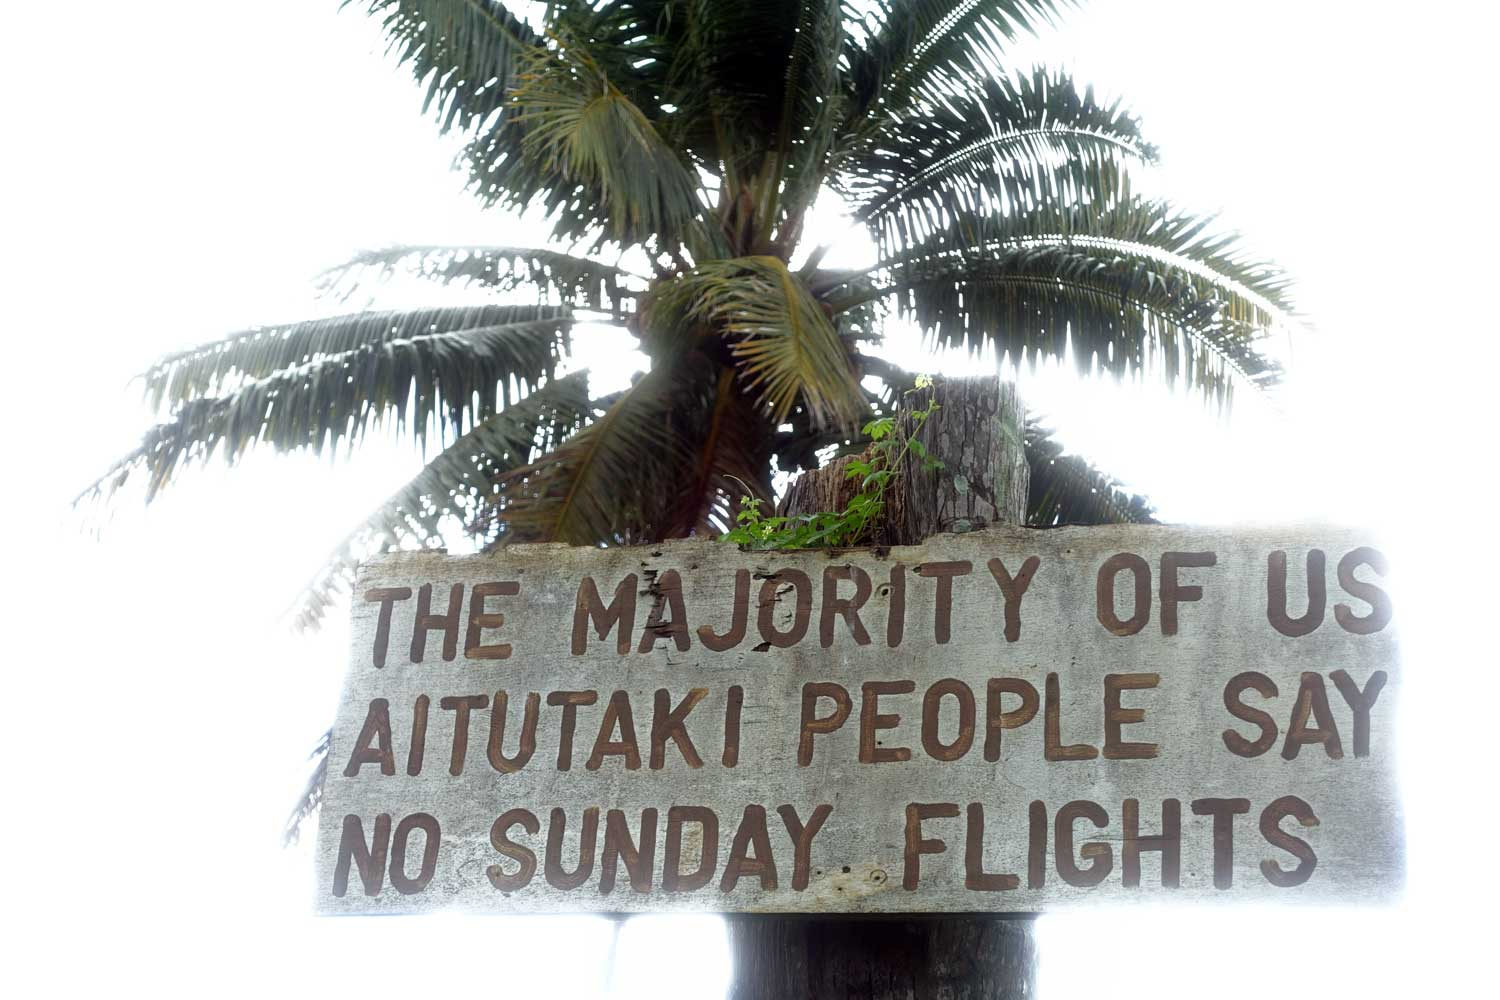 Aitutaki culture no sunday flight sign